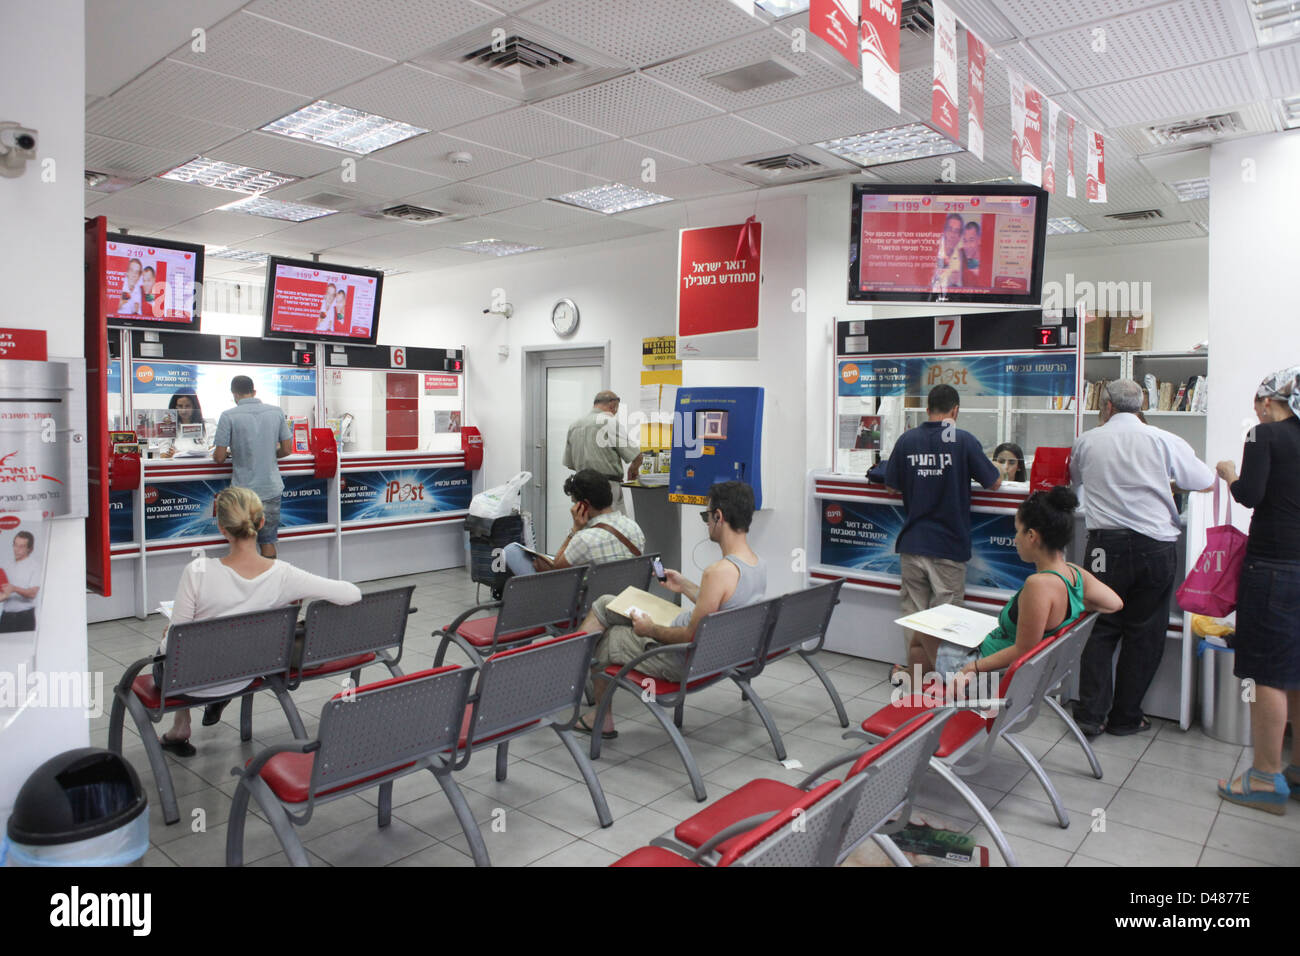 Israel Postal Company, post office interior, Tel Aviv, Israel - Stock Image